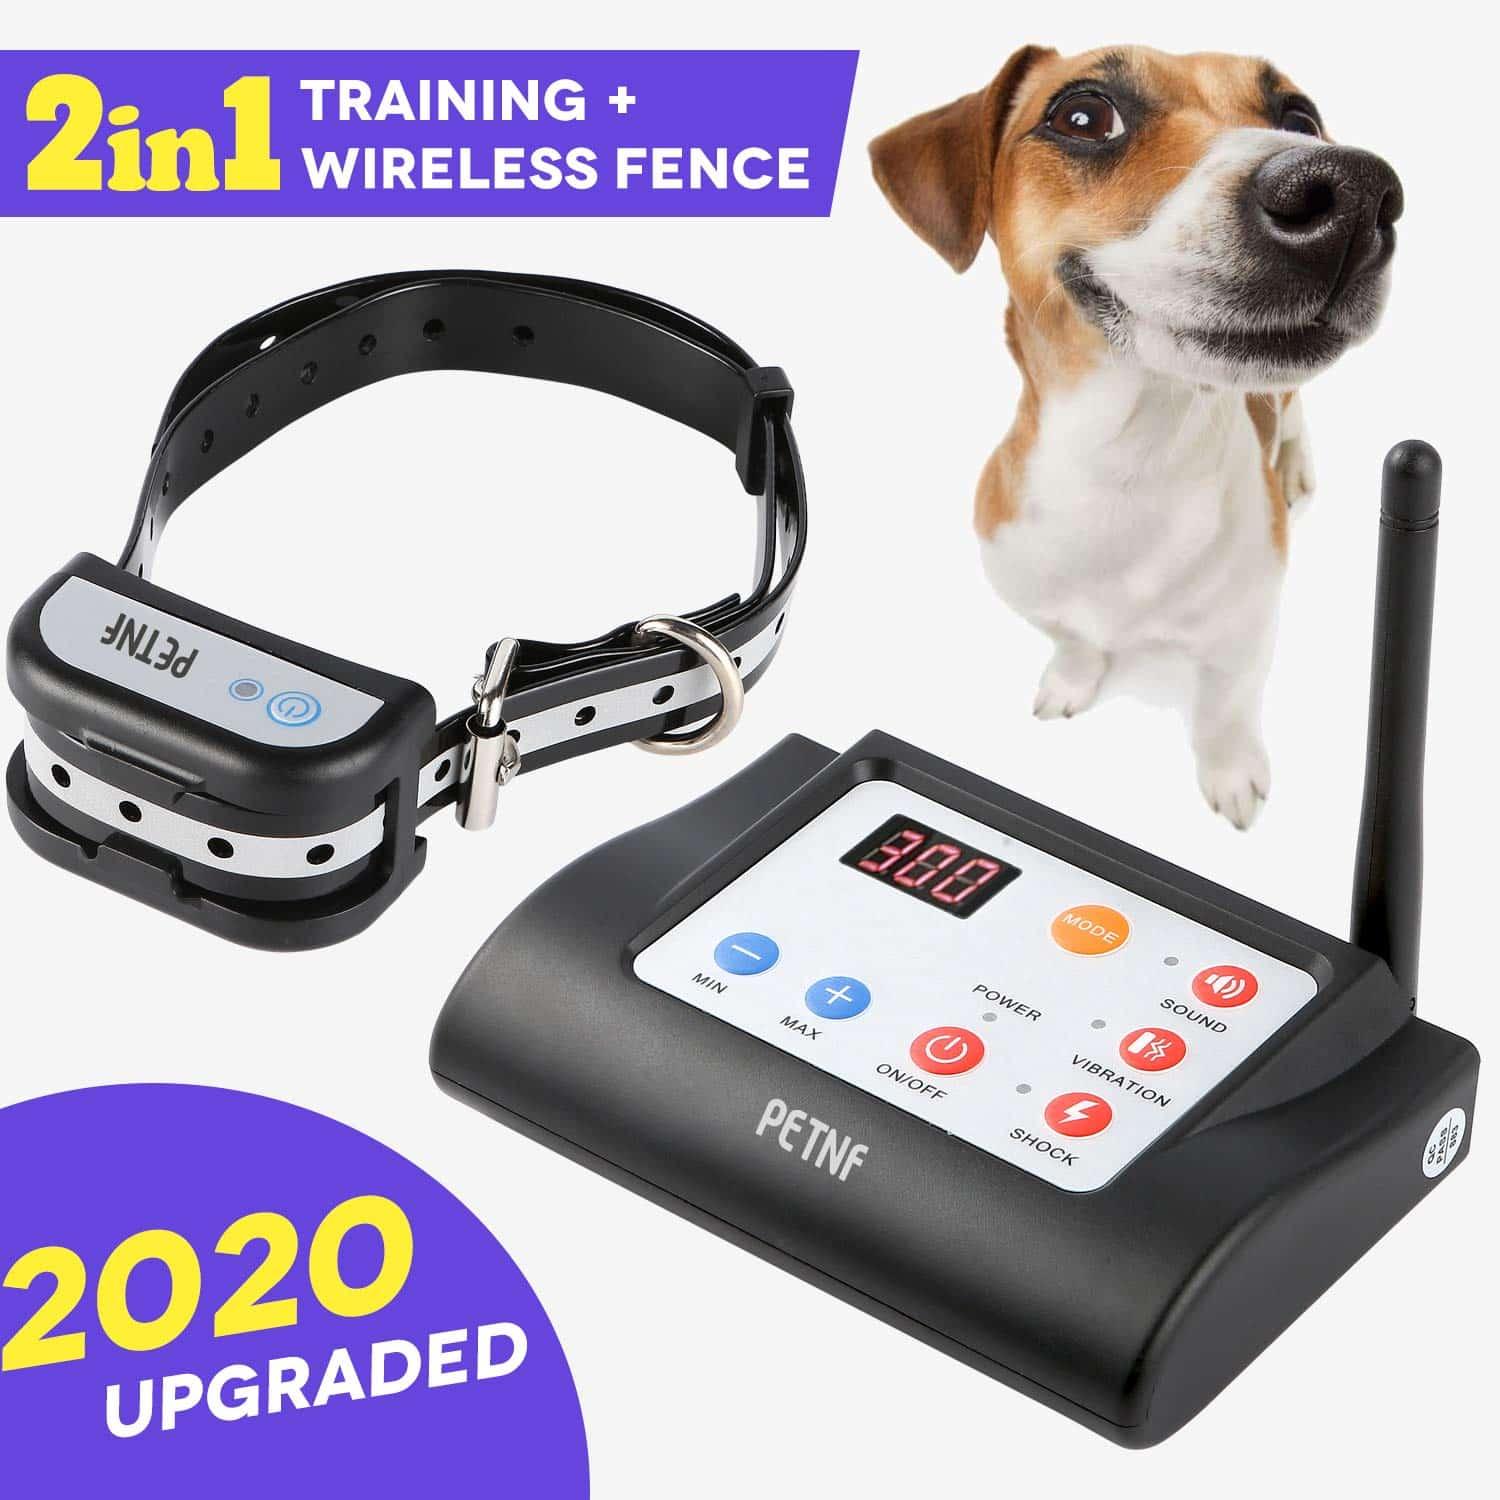 PETNF Wireless Electric Dog Fence System